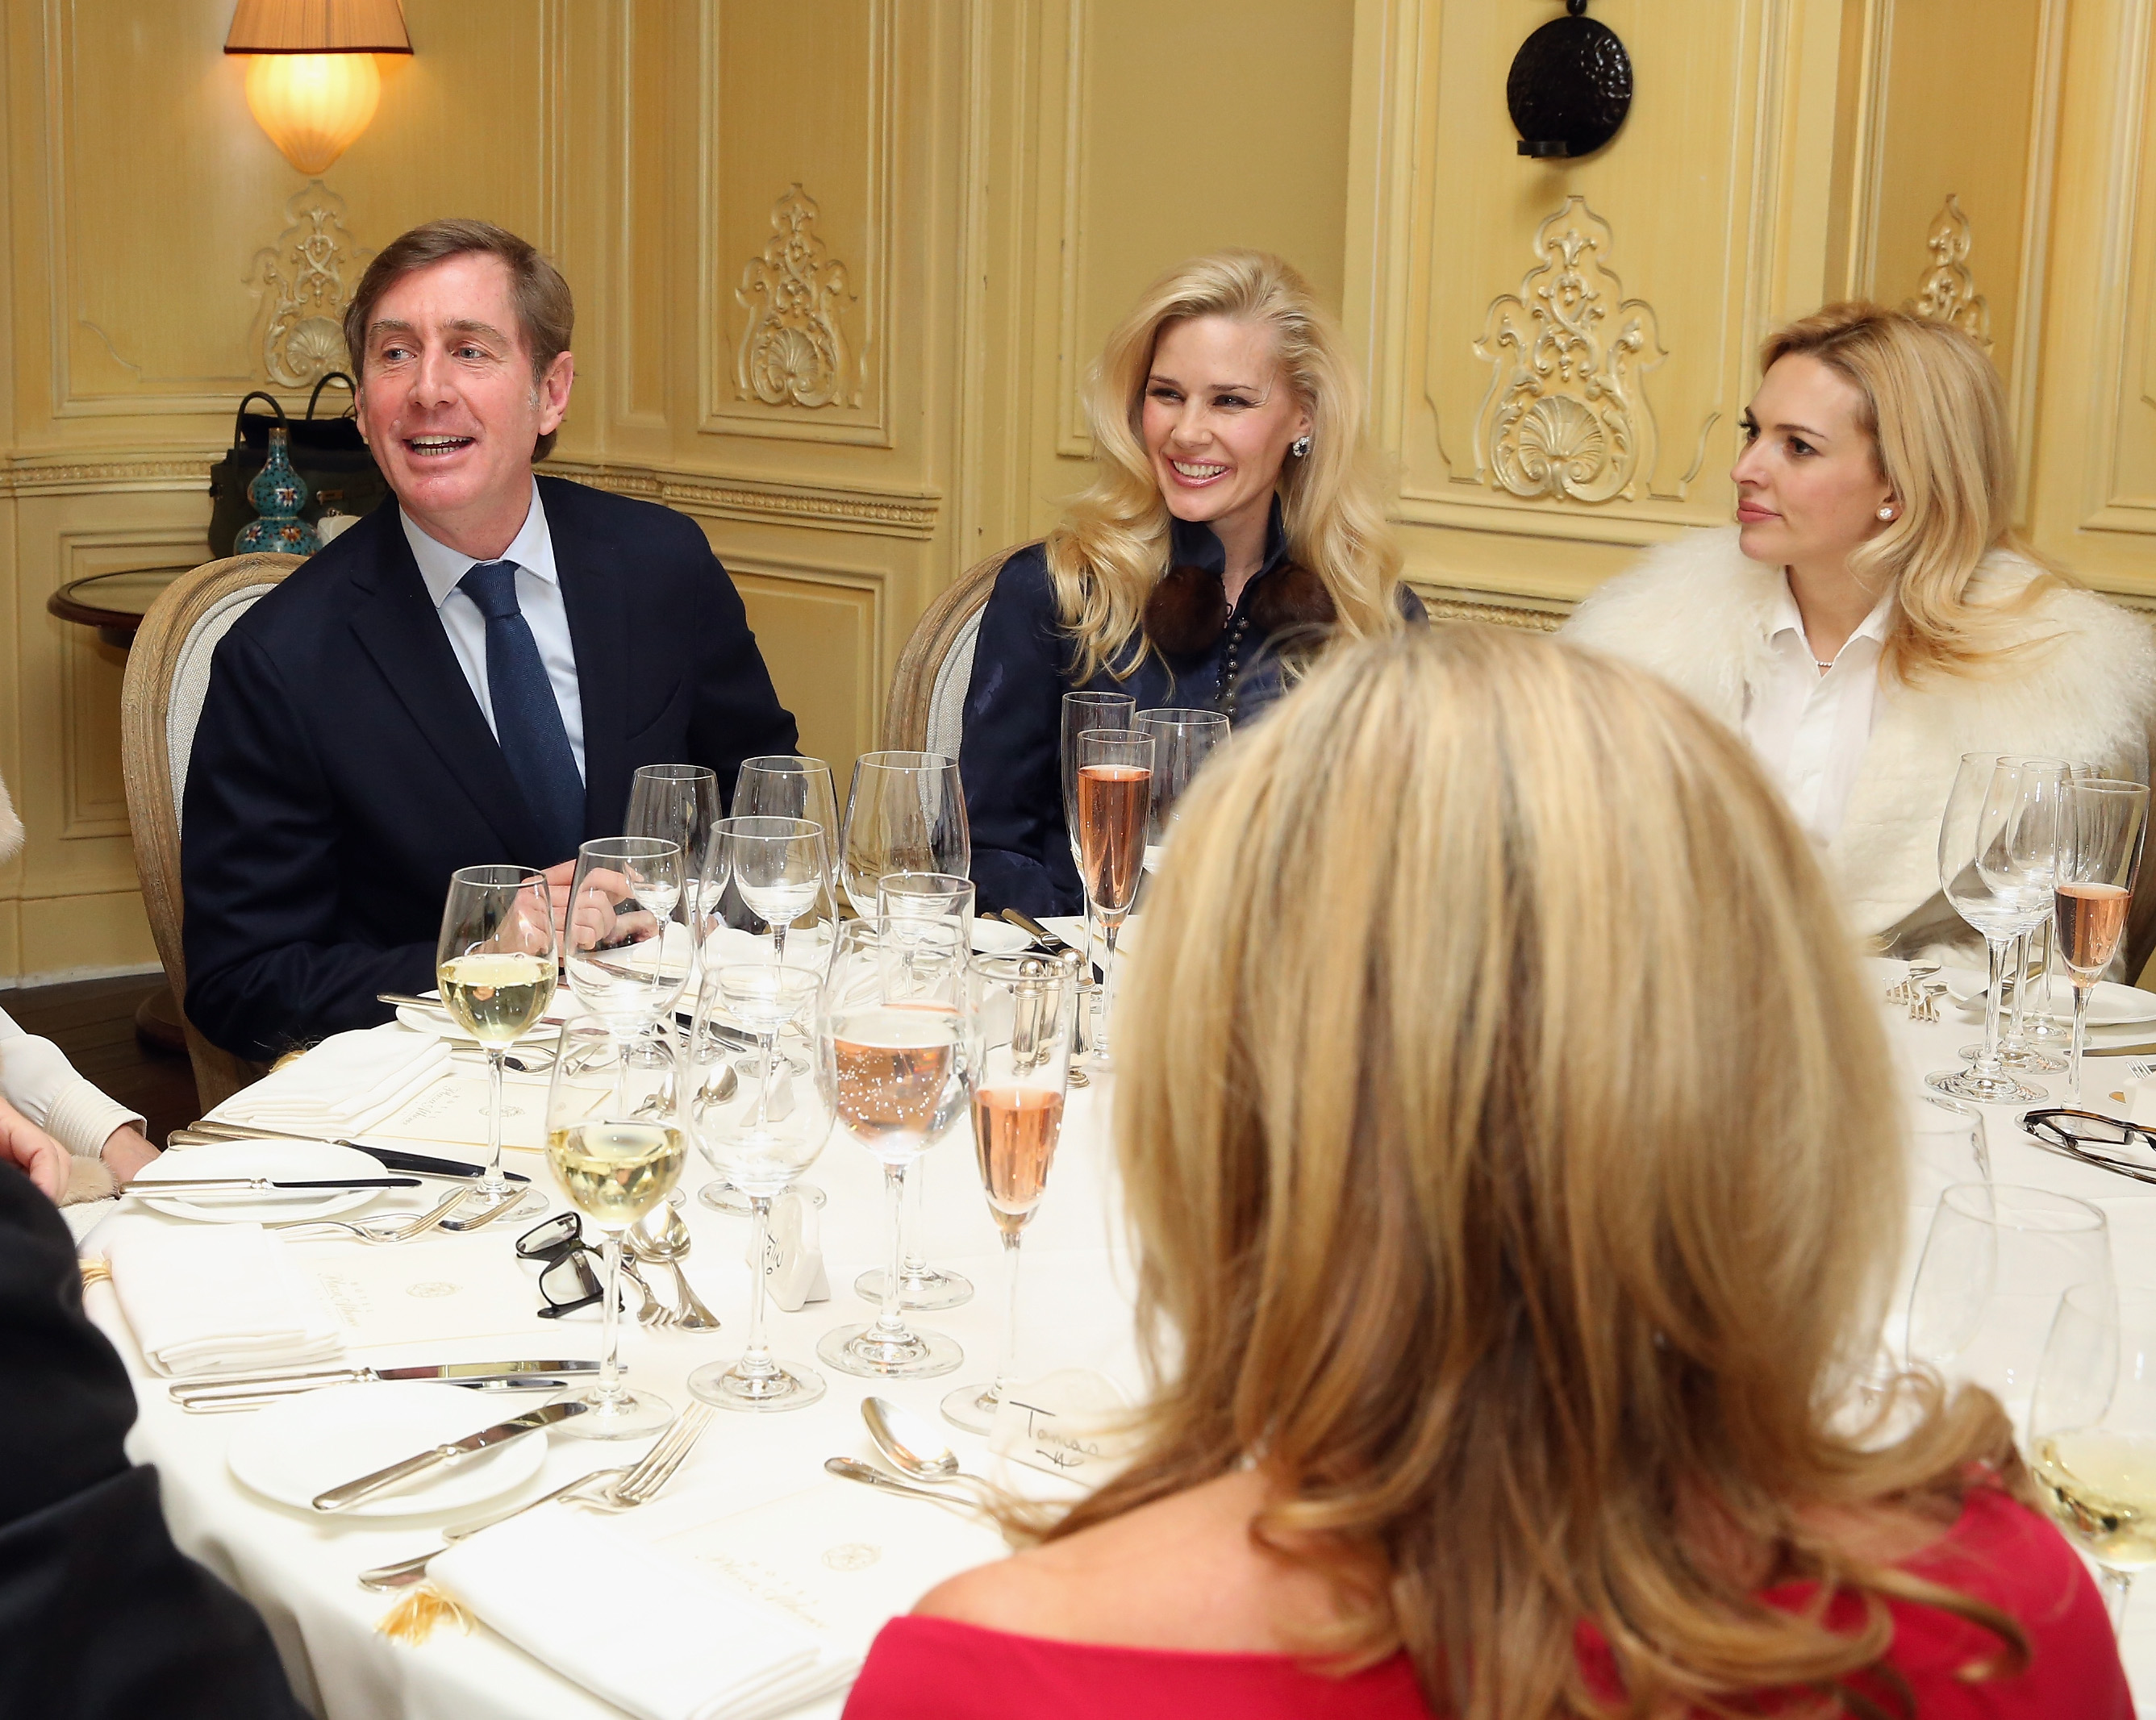 NEW YORK, NY - JANUARY 08: Prince Charles Henri Lobkowicz, New York Socialite Michelle-Marie Heinemann and Anne Baker attend a Luncheon At Plaza Athenee on January 8, 2016 in New York City. (Photo by Robin Marchant/Getty Images for Old Fashioned Mom Magazine)